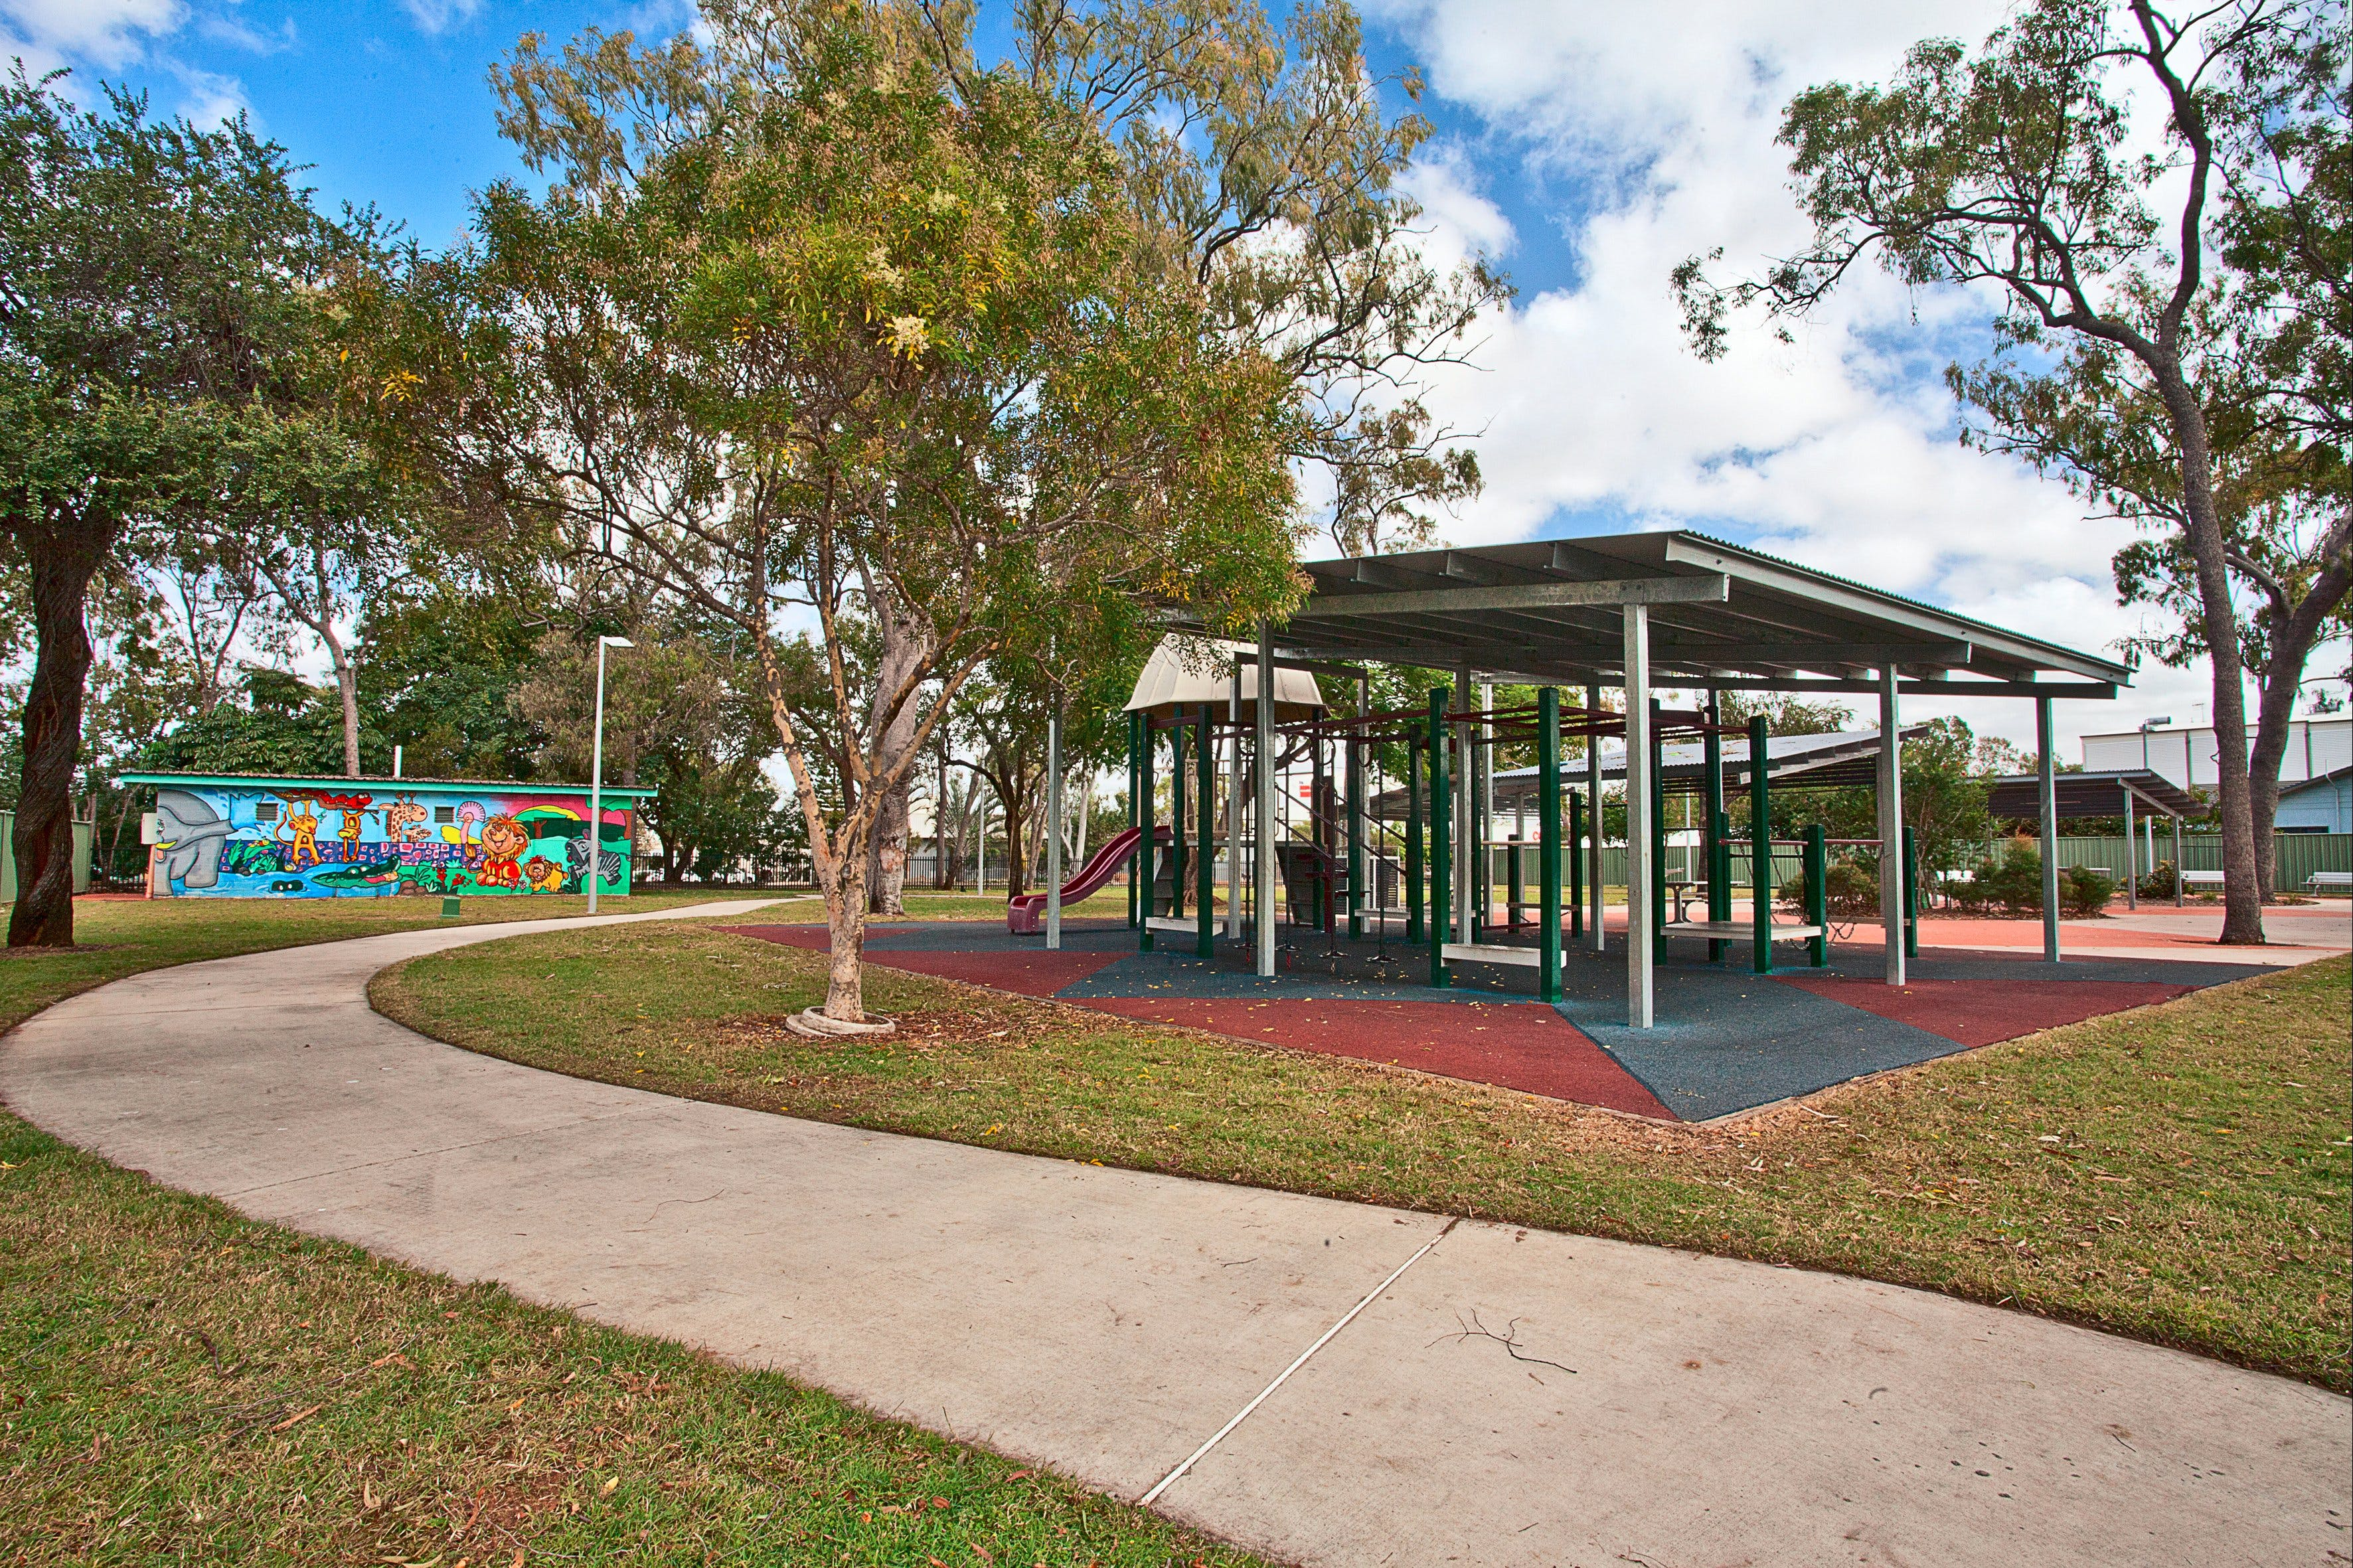 Grosvenor Park in Moranbah - Find Attractions